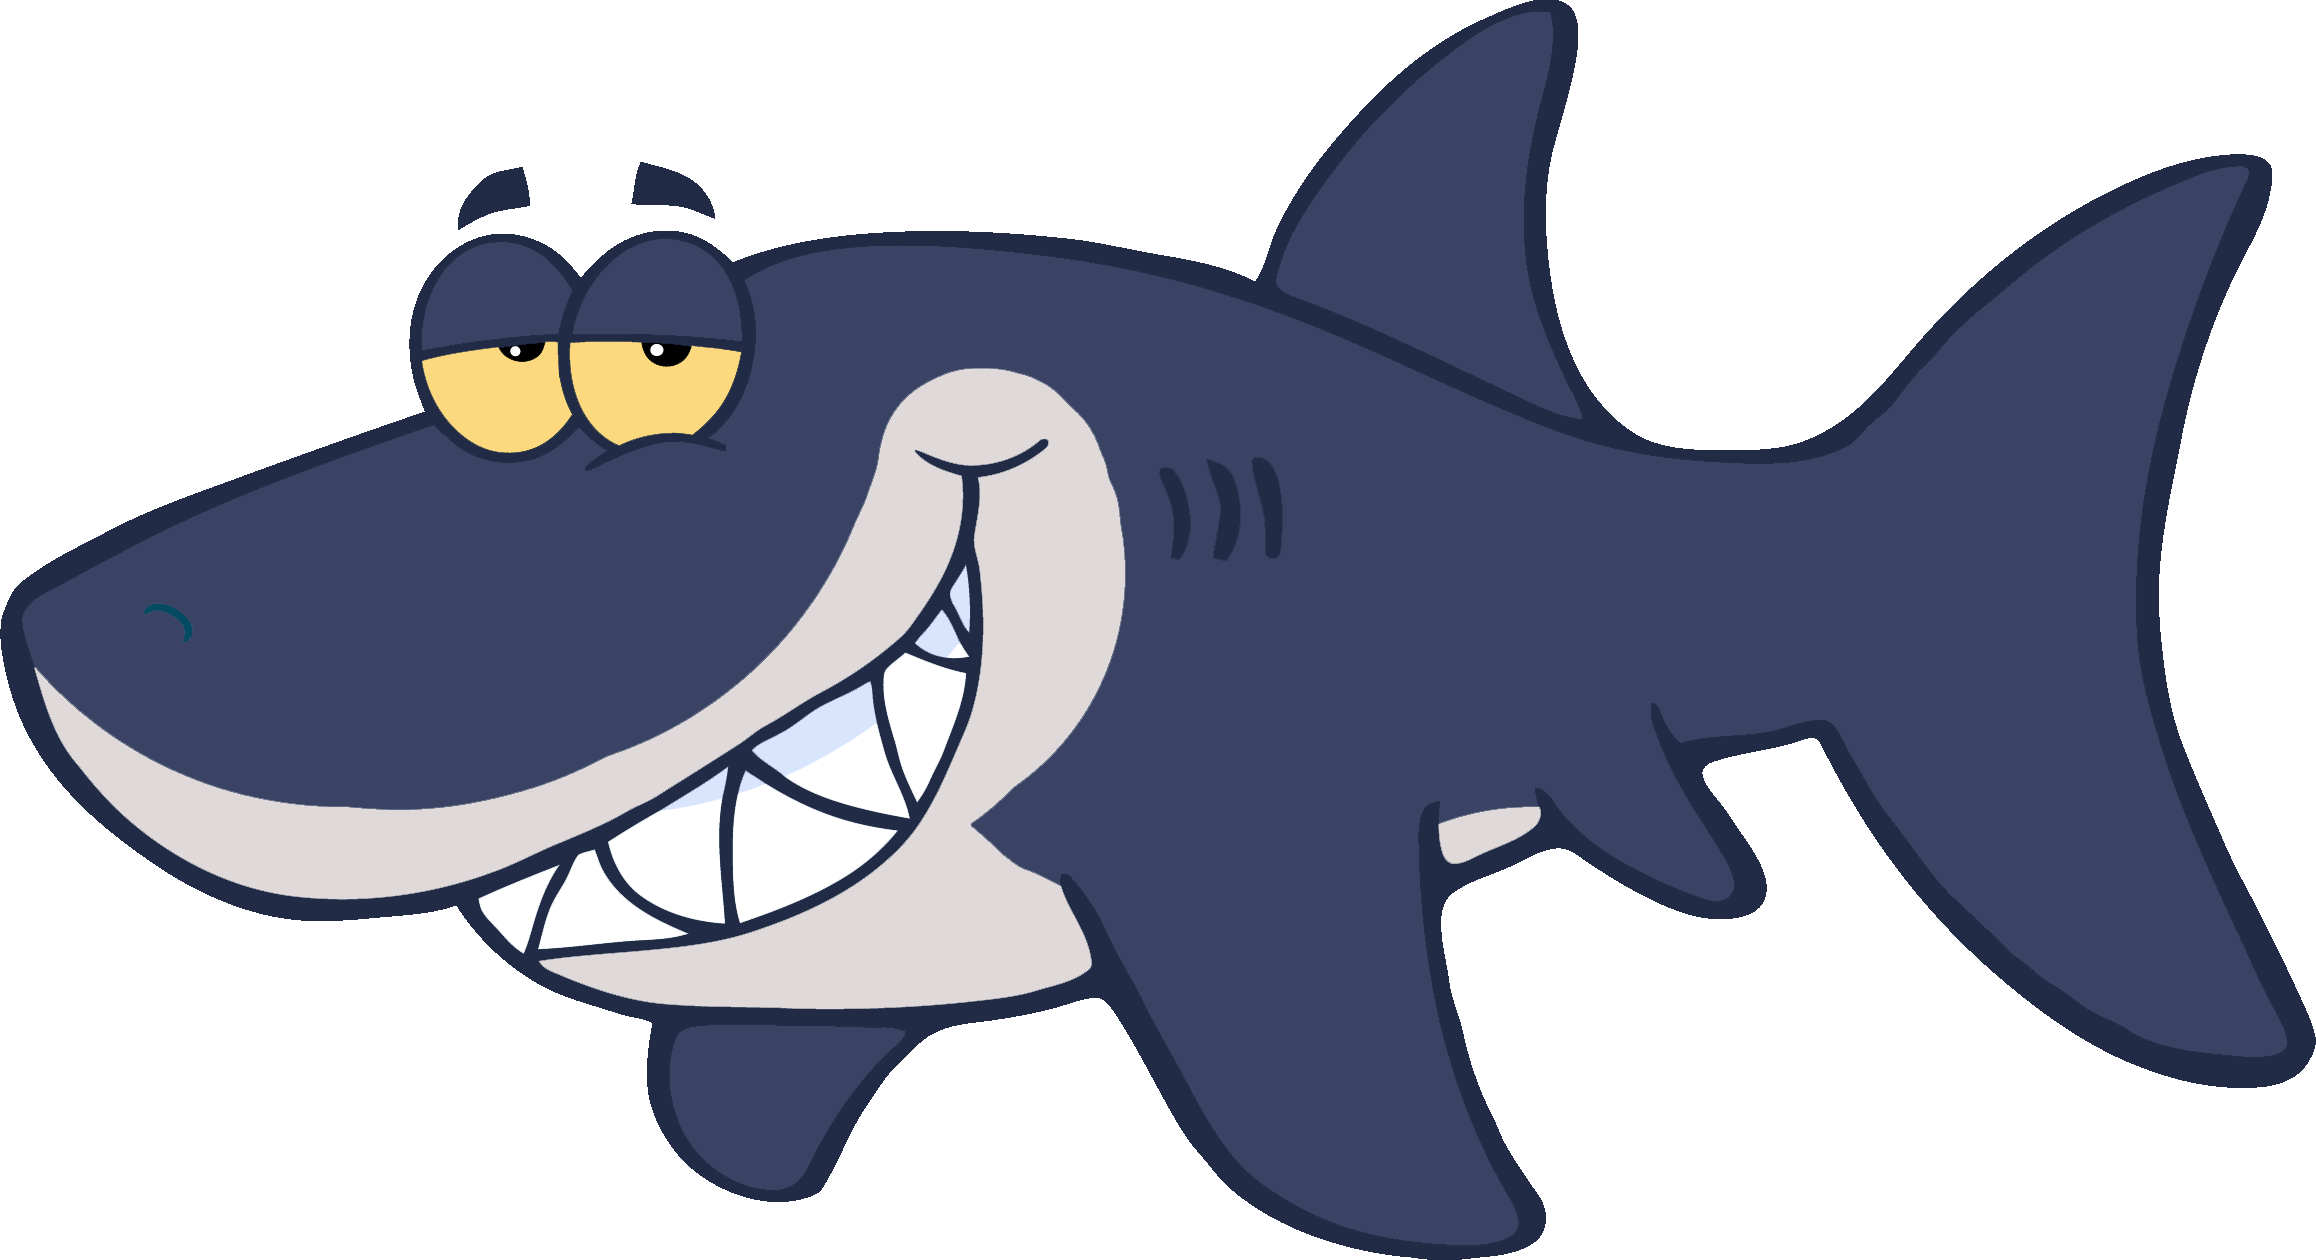 Clipart shark tail. Cartoon royalty free clip